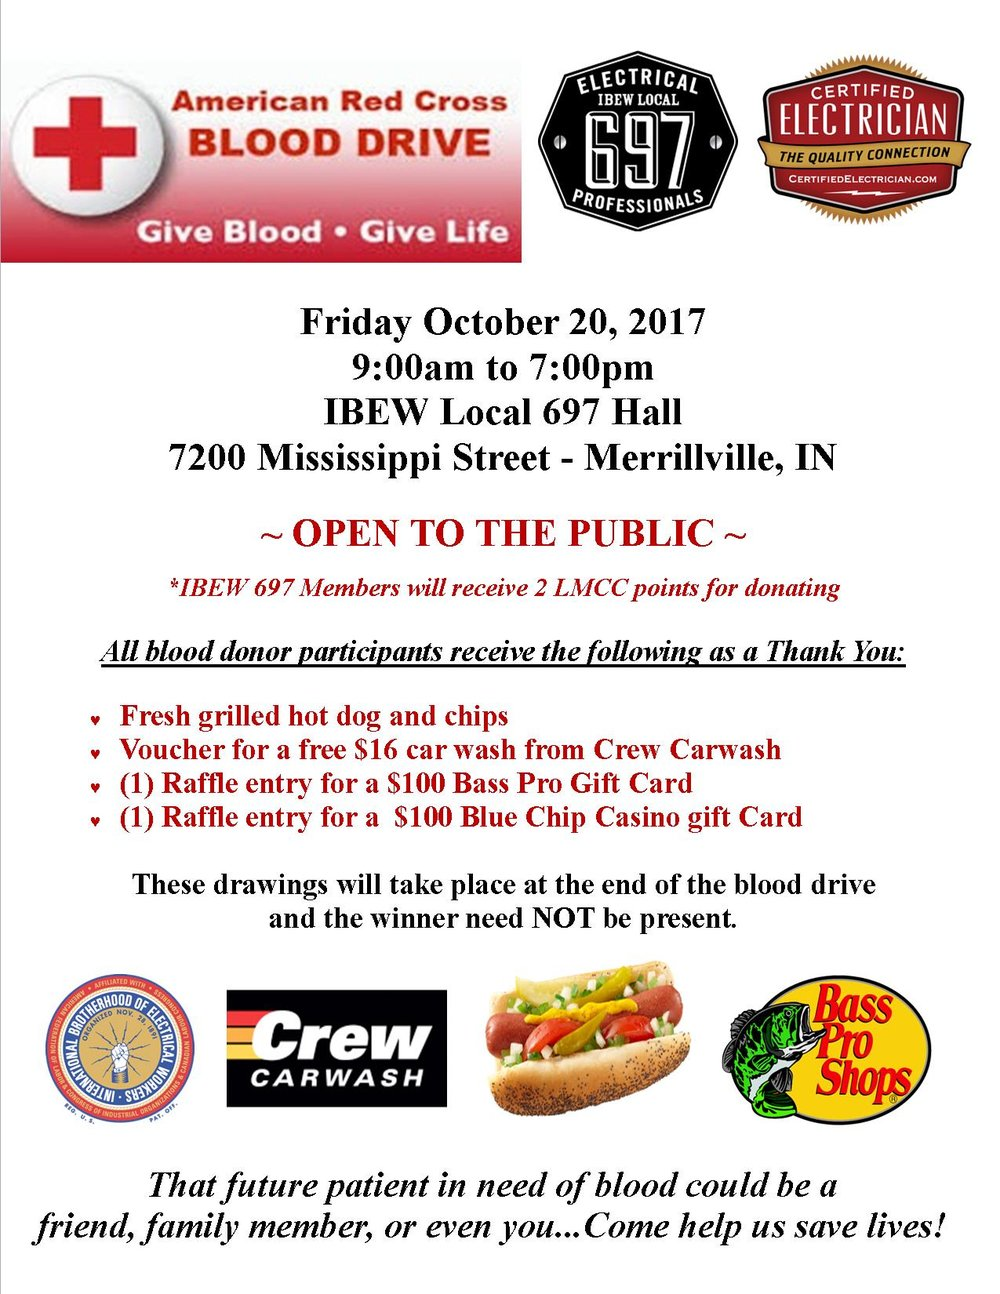 IBEW October 2017 Blood drive flyer.jpg